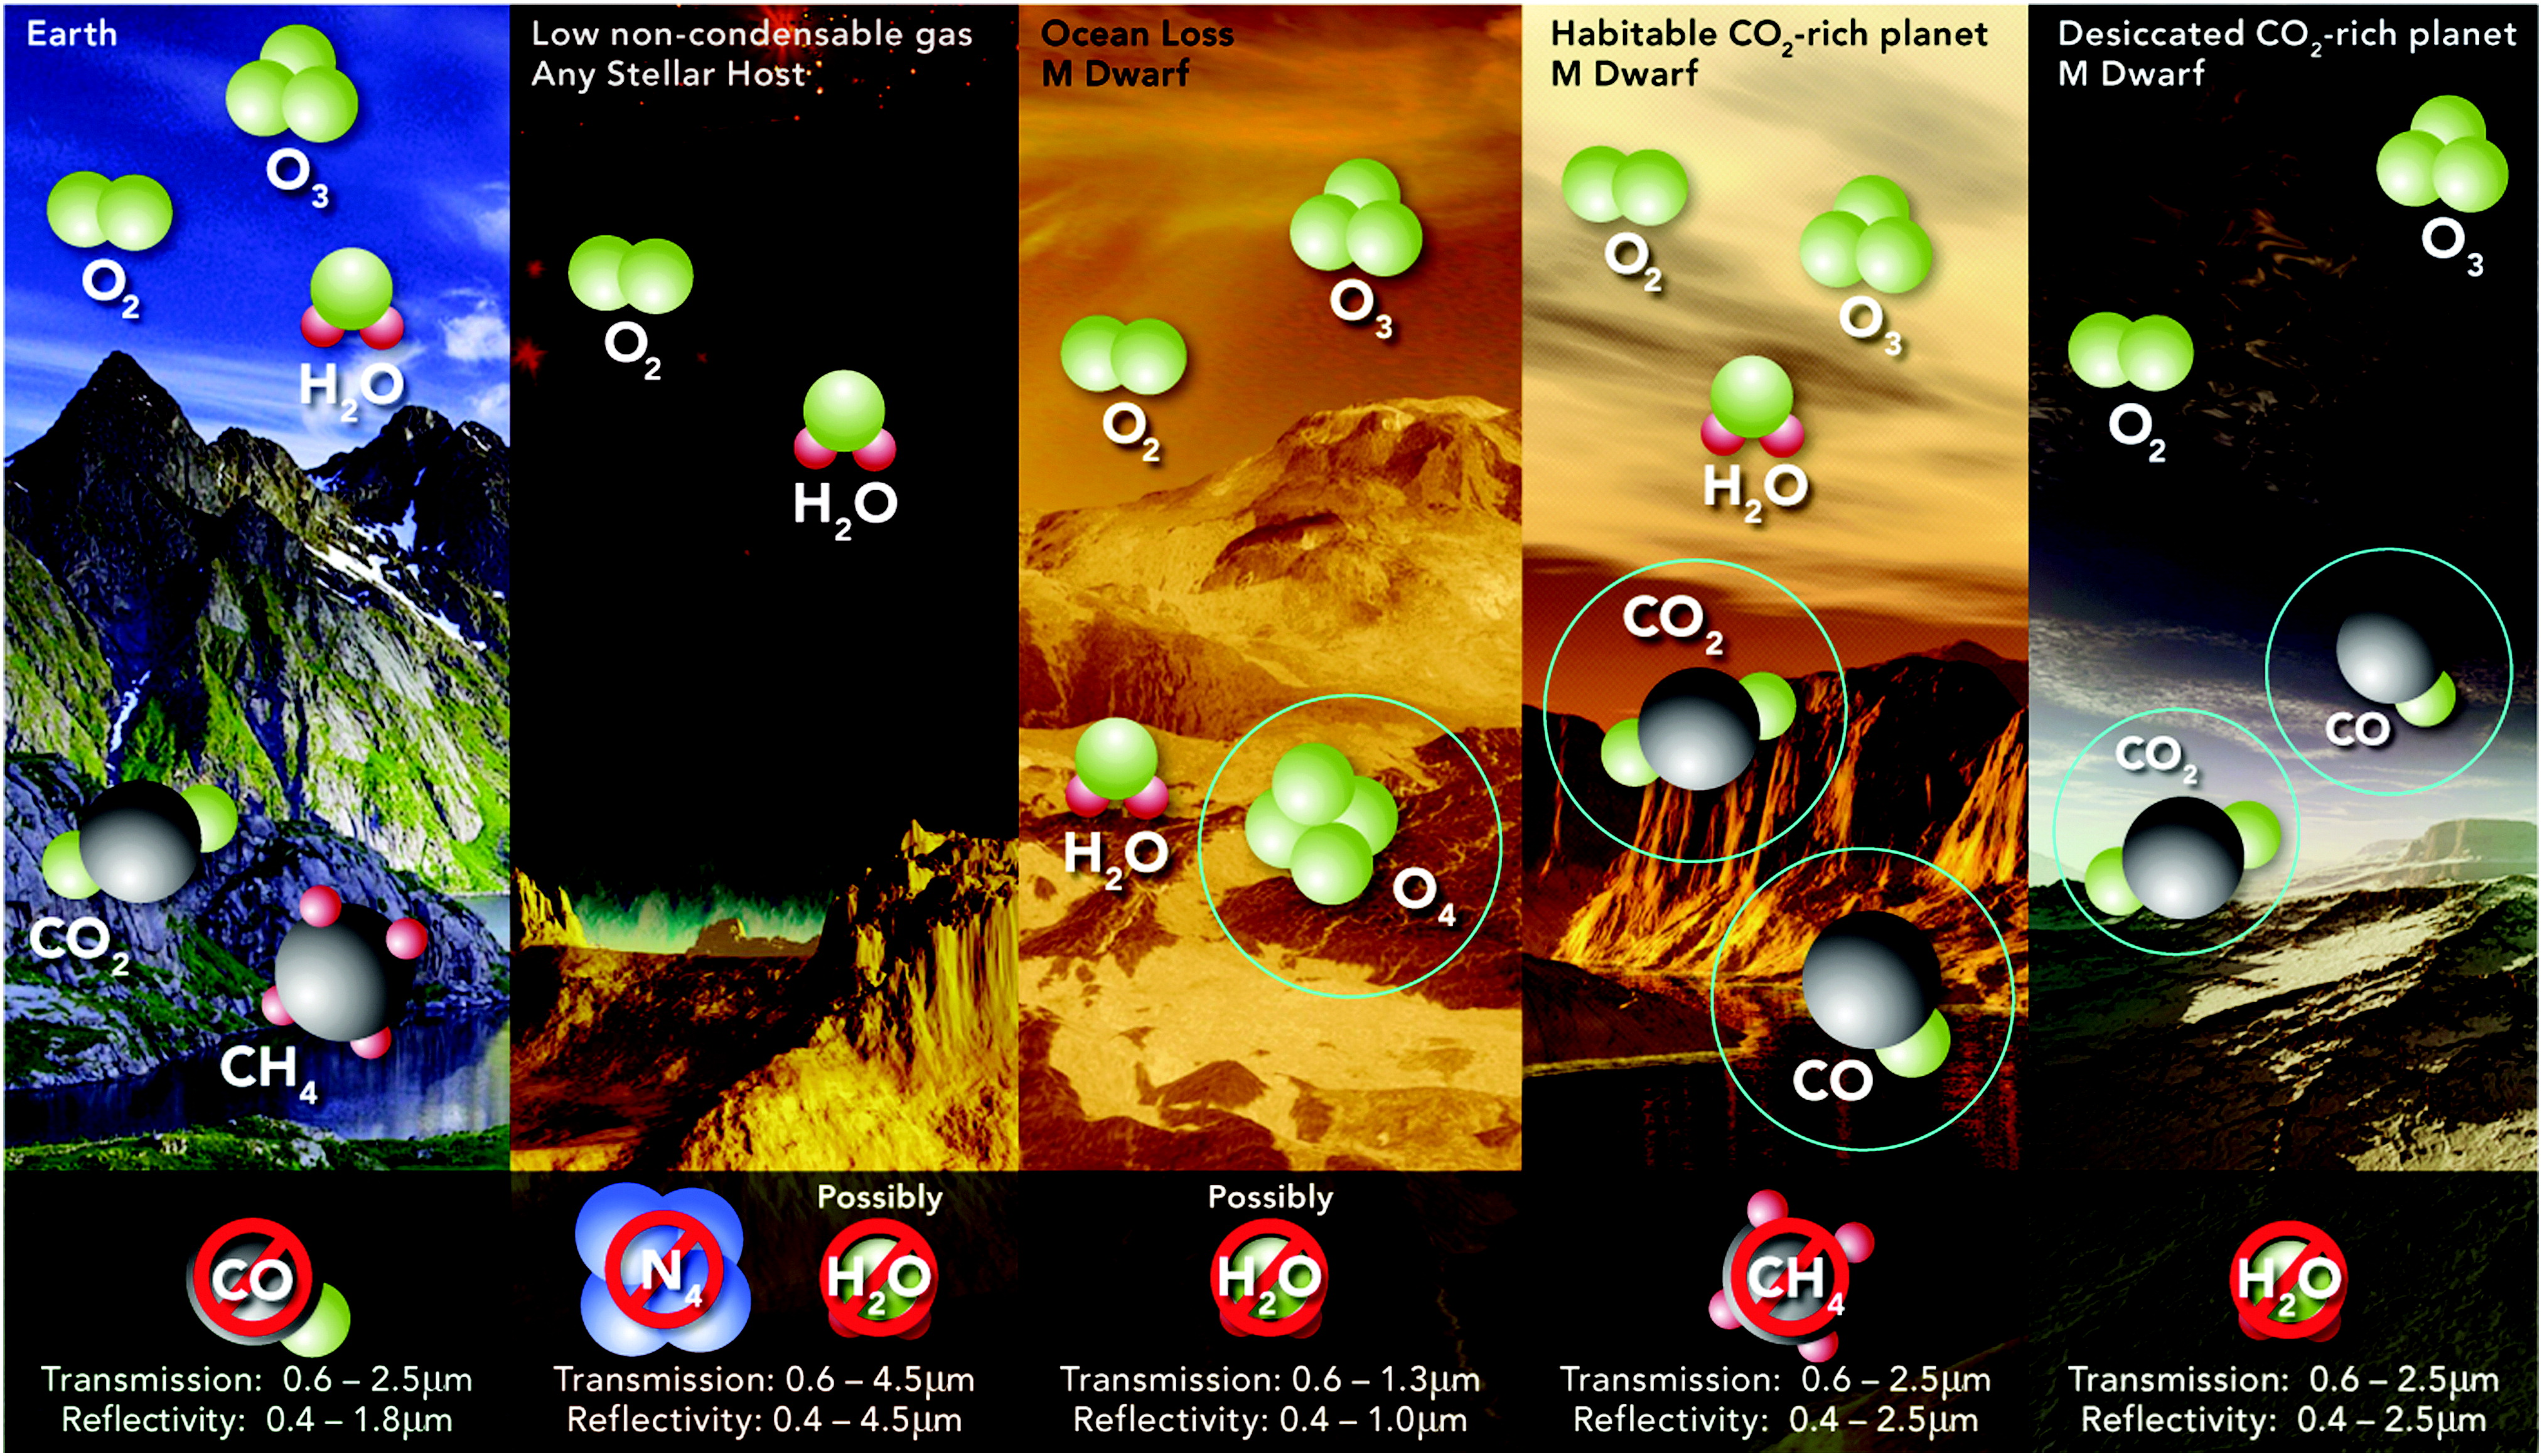 Potential false positive mechanisms for O<sub>2</sub>. This cartoon summarizes the atmospheric mechanisms by which O<sub>2</sub> could form abiotically at high abundance in a planetary atmosphere (Meadows, 2017). Image credit: Ron Hasler